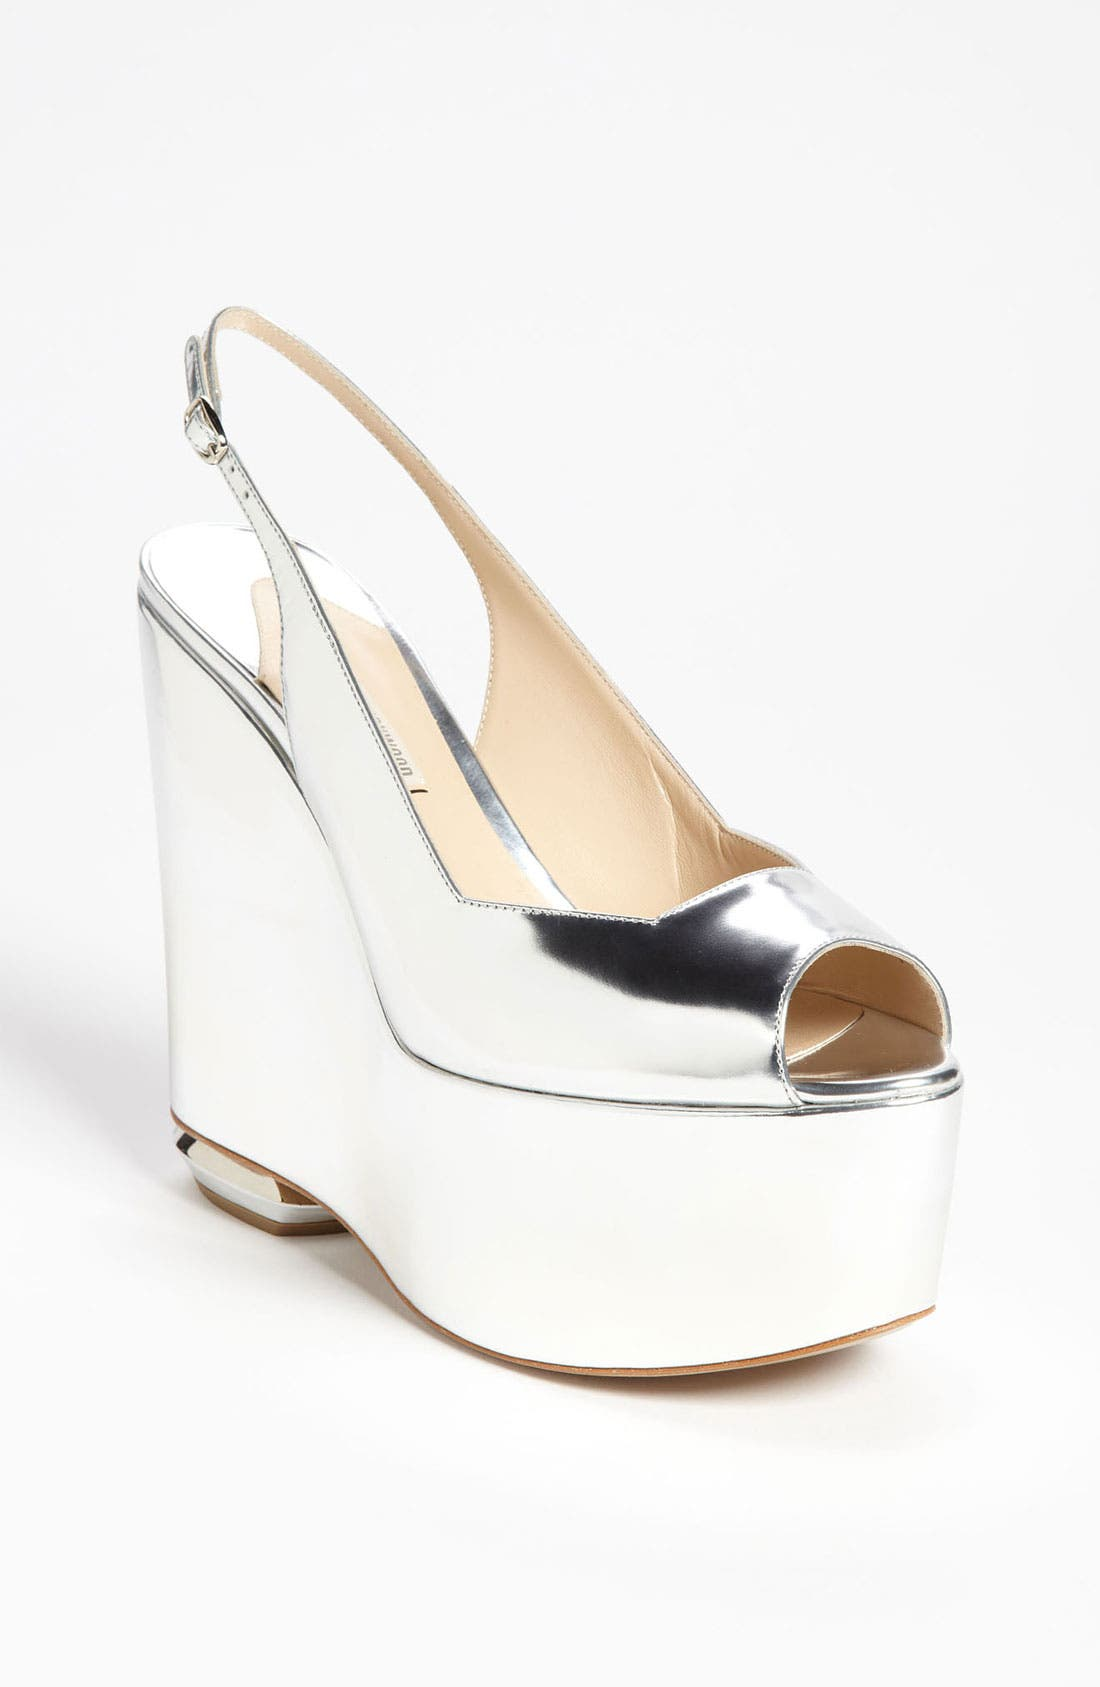 Alternate Image 1 Selected - Nicholas Kirkwood Wedge Sandal